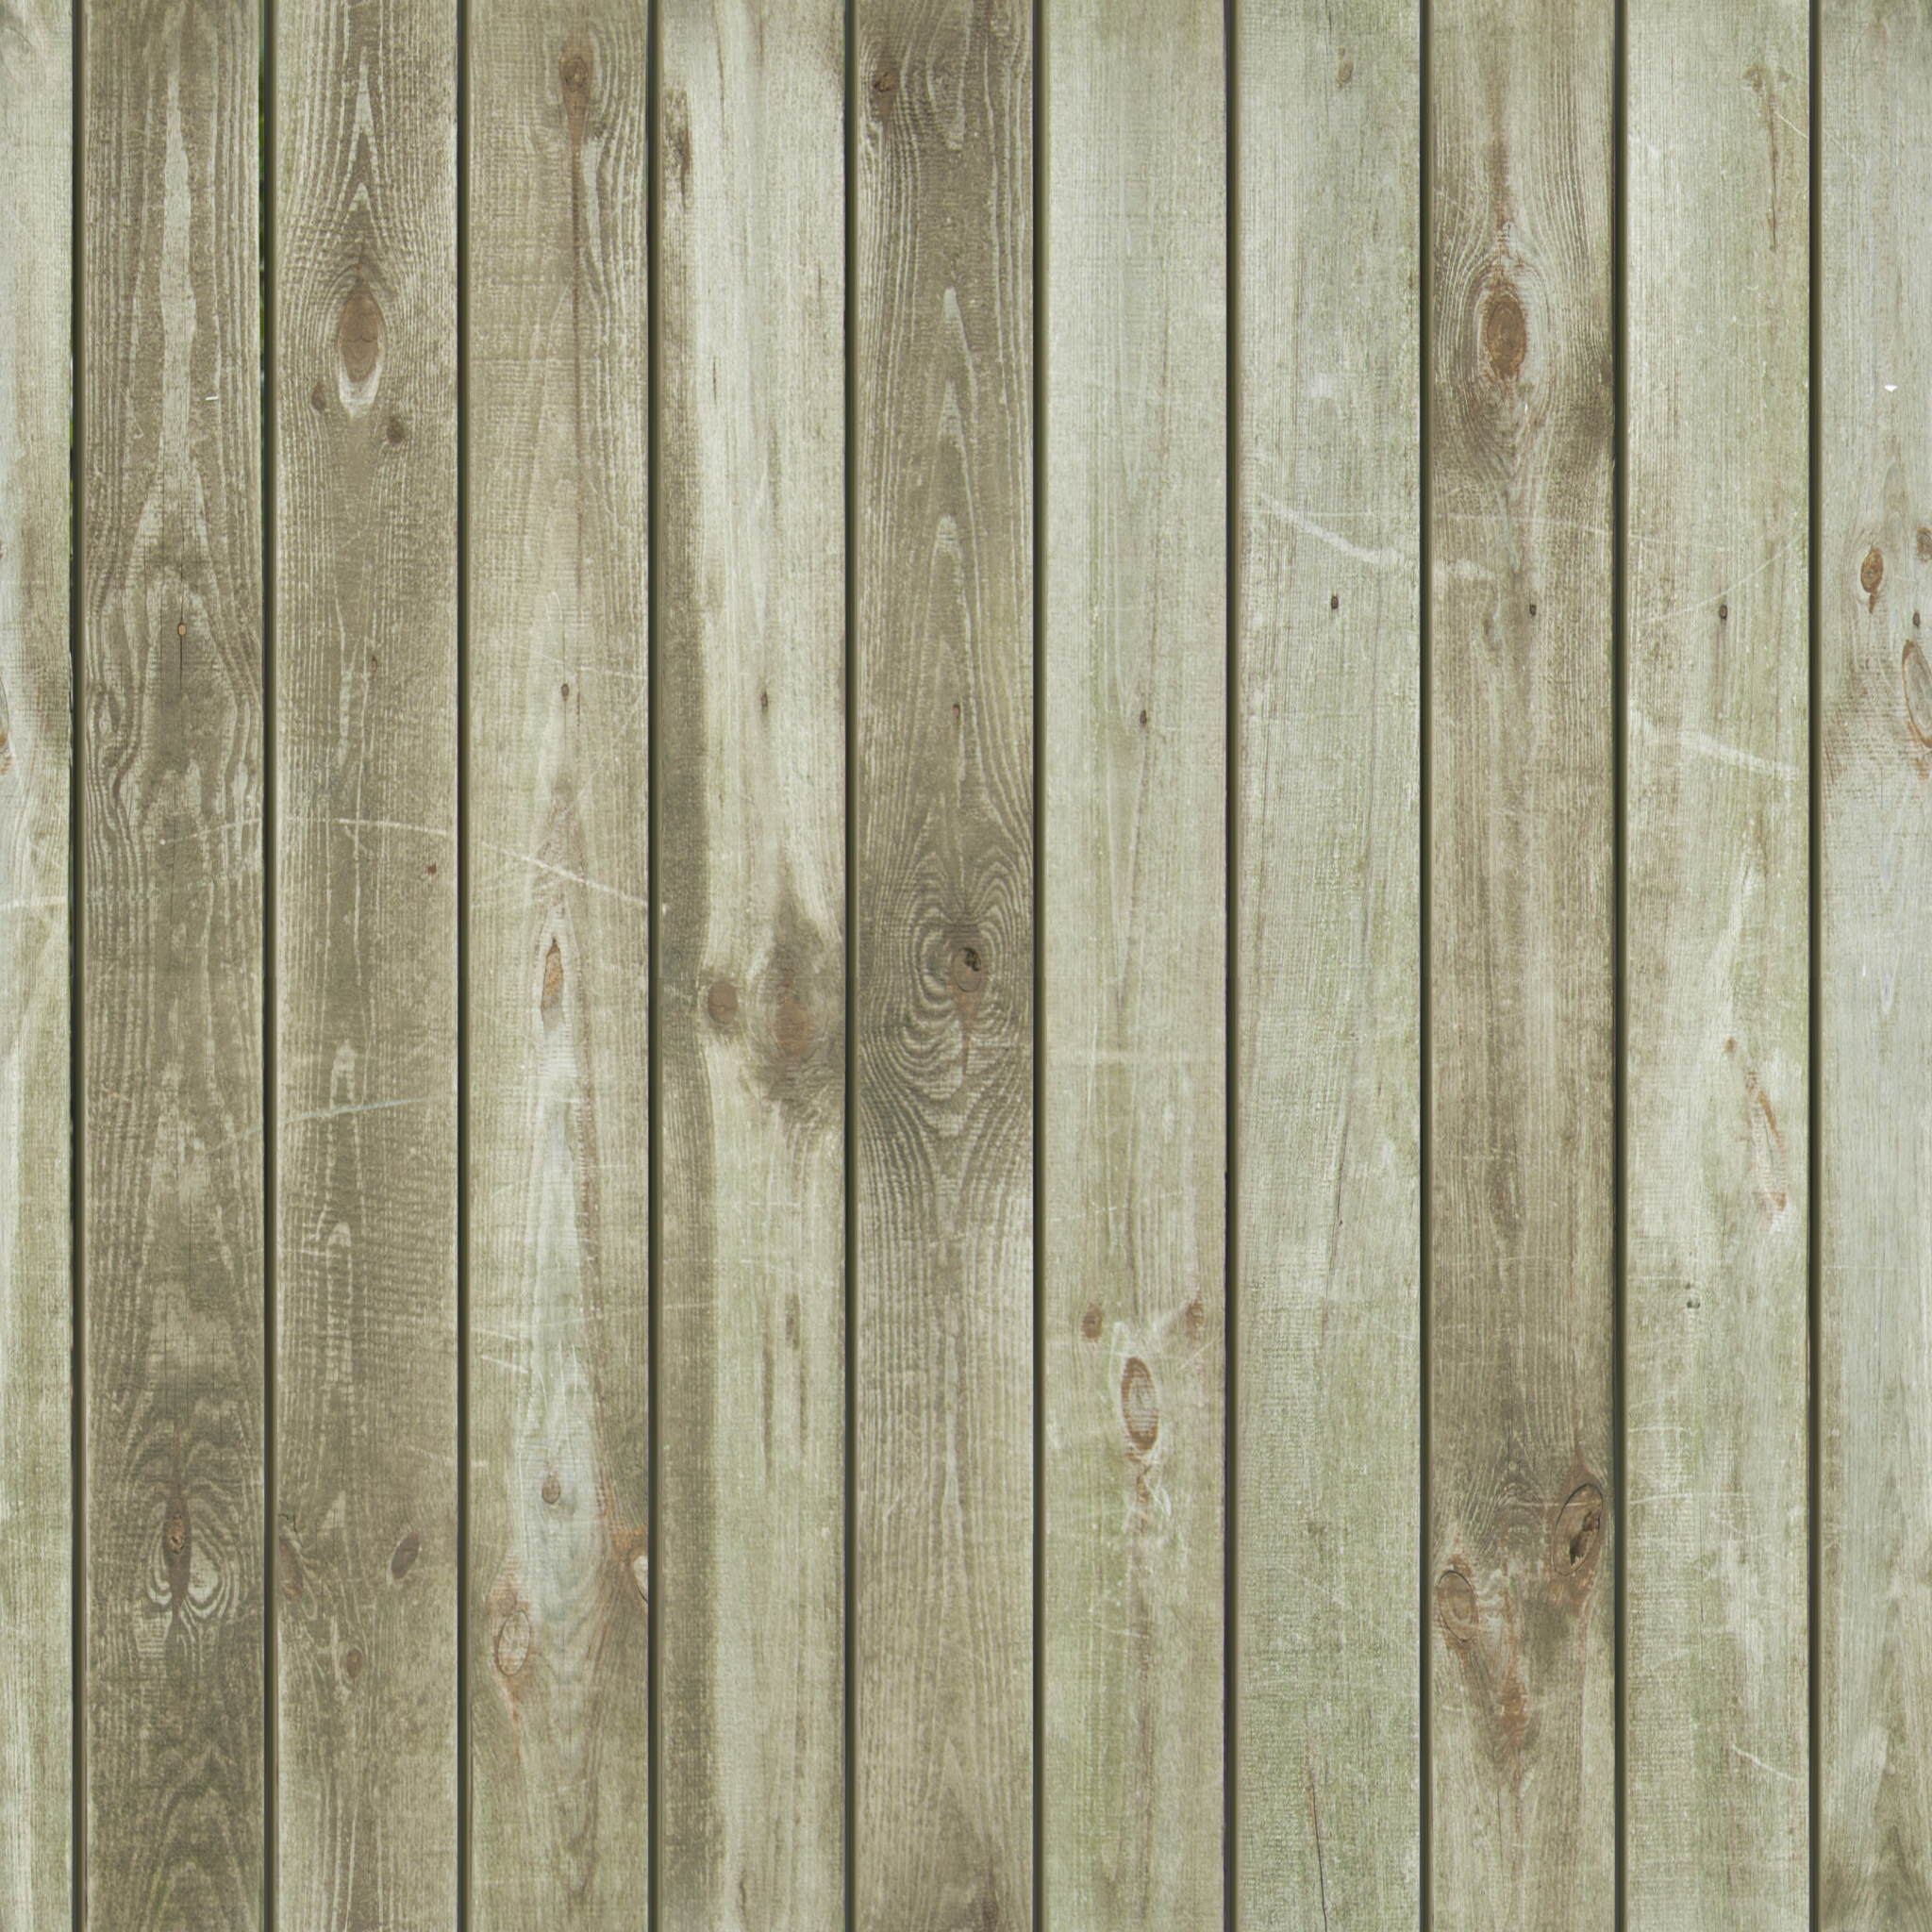 Antique Ash Fence.jpg